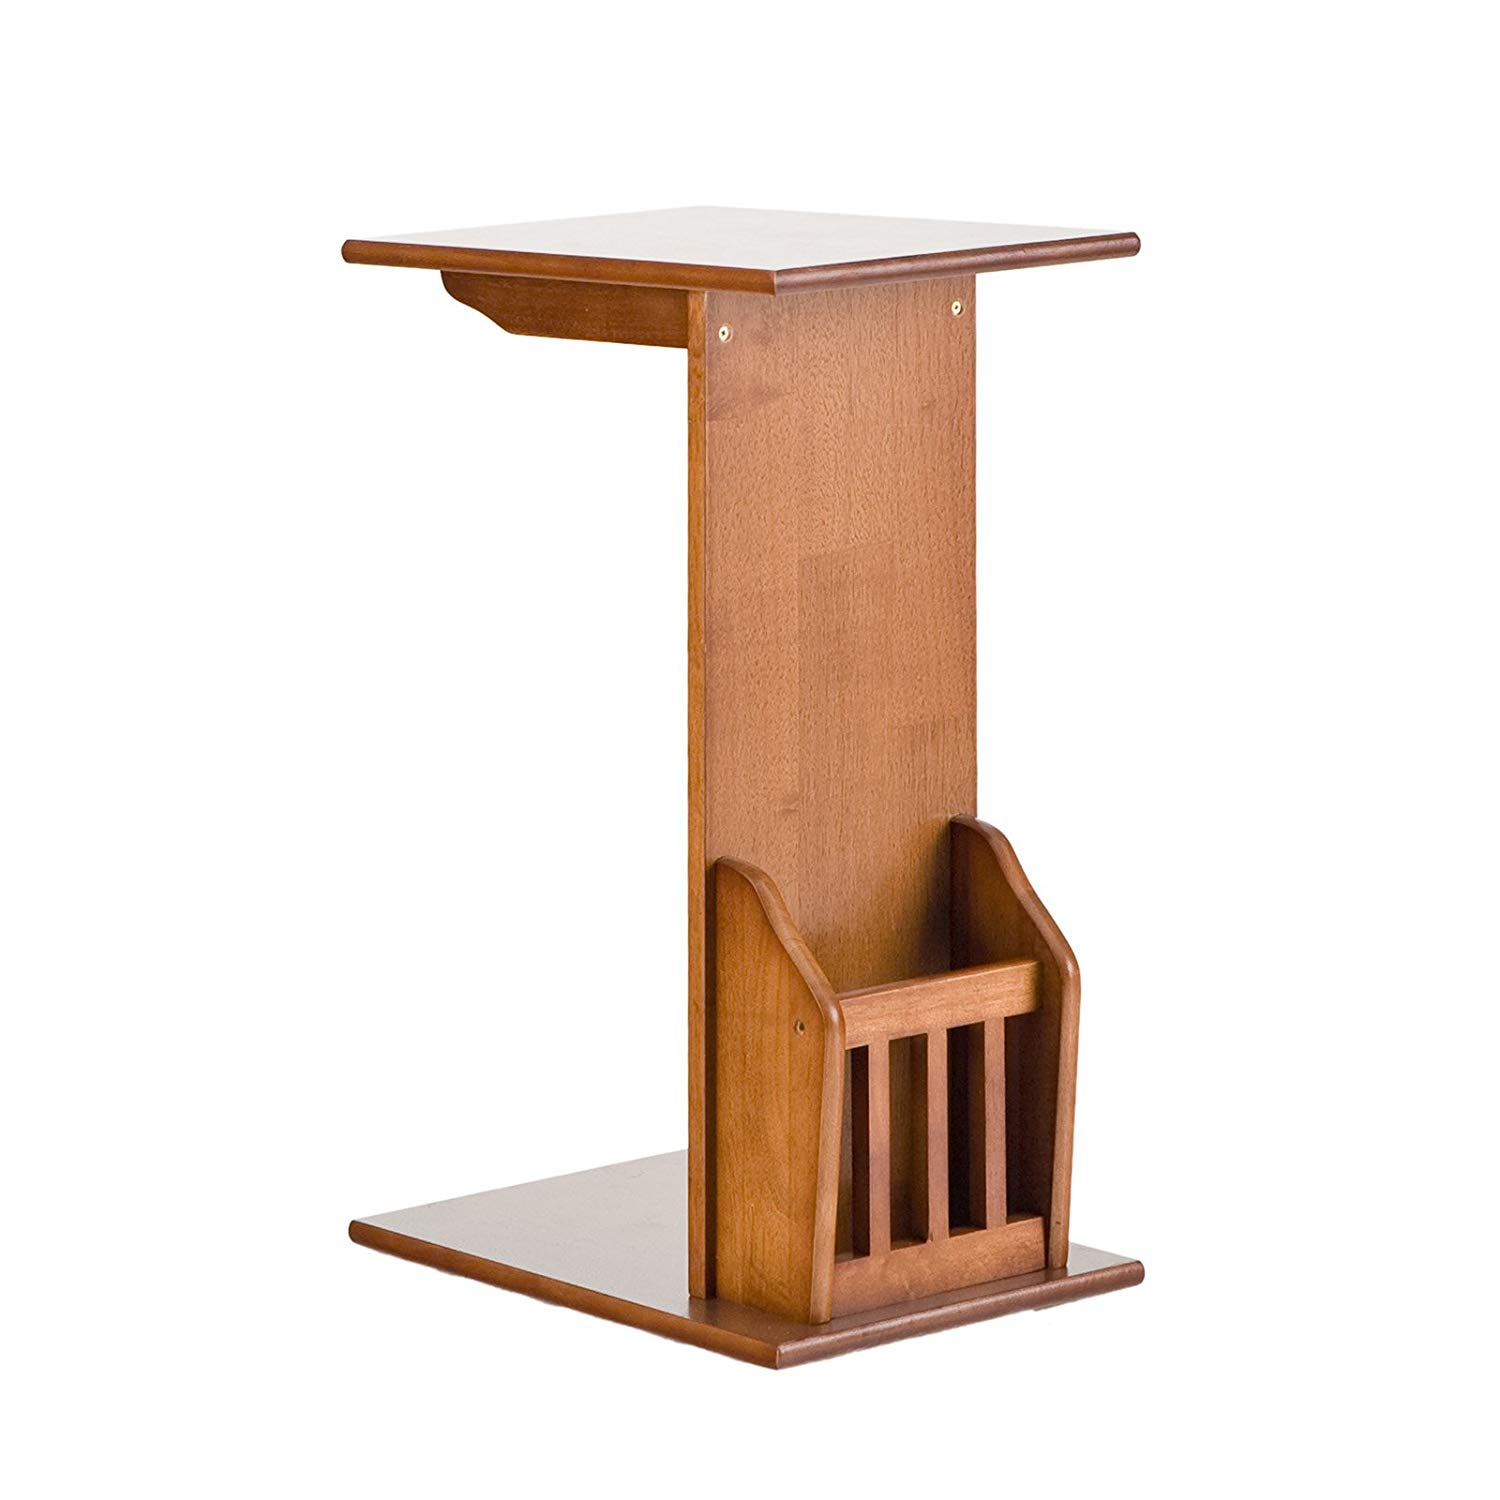 southern enterprises magazine snack table mission oak wood block accent finish kitchen dining small round wooden side bar towels pottery barn room chair covers wesley hall